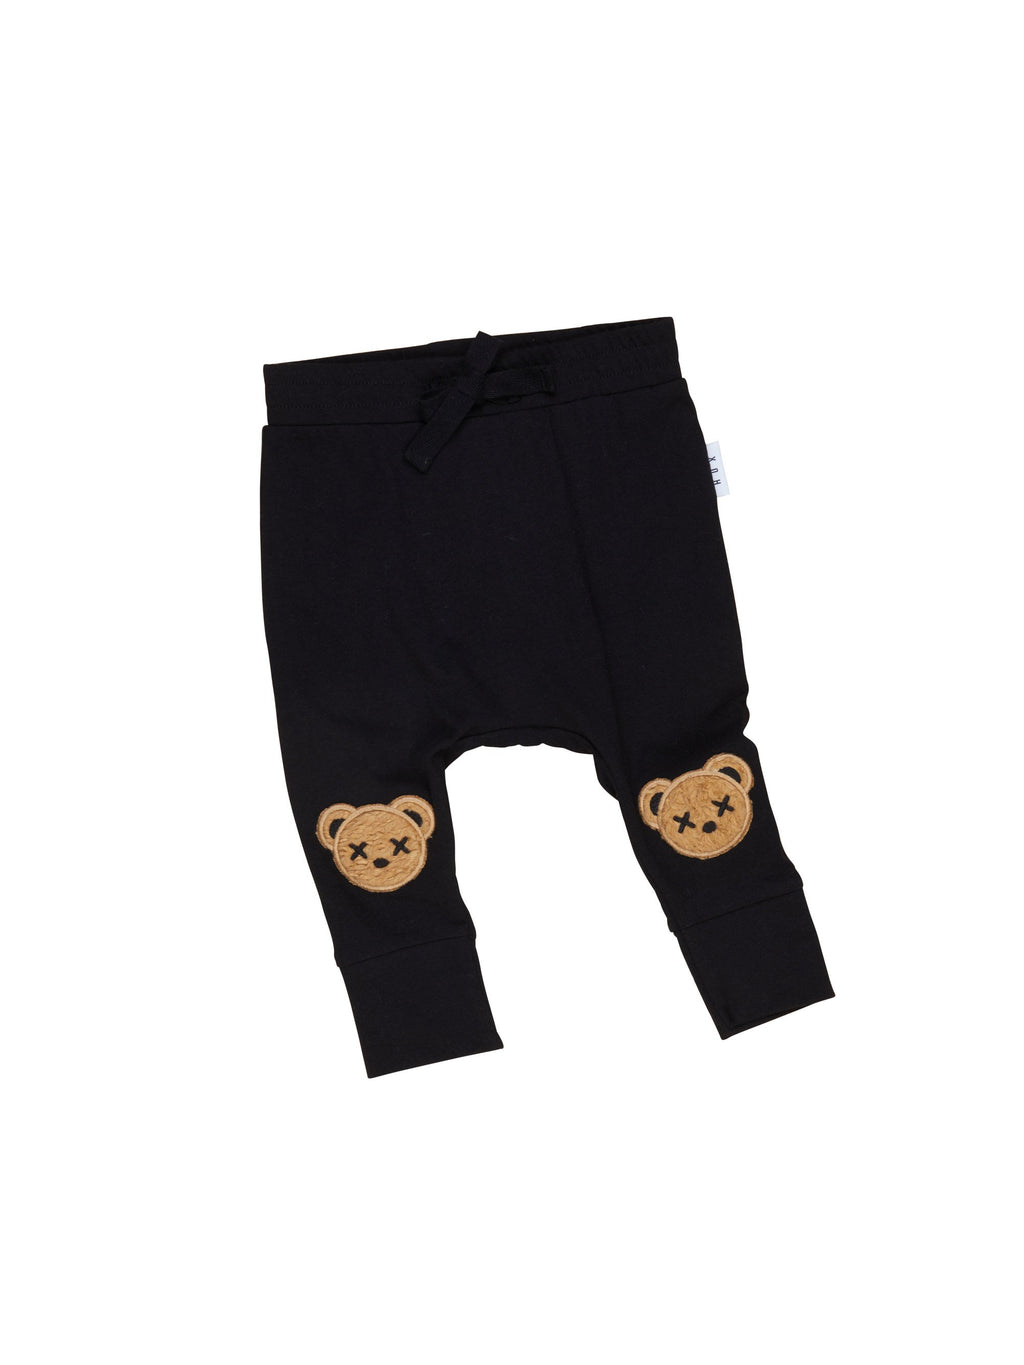 Huxbaby Huxbear Applique Knee Drop Crotch Pant - HB1824